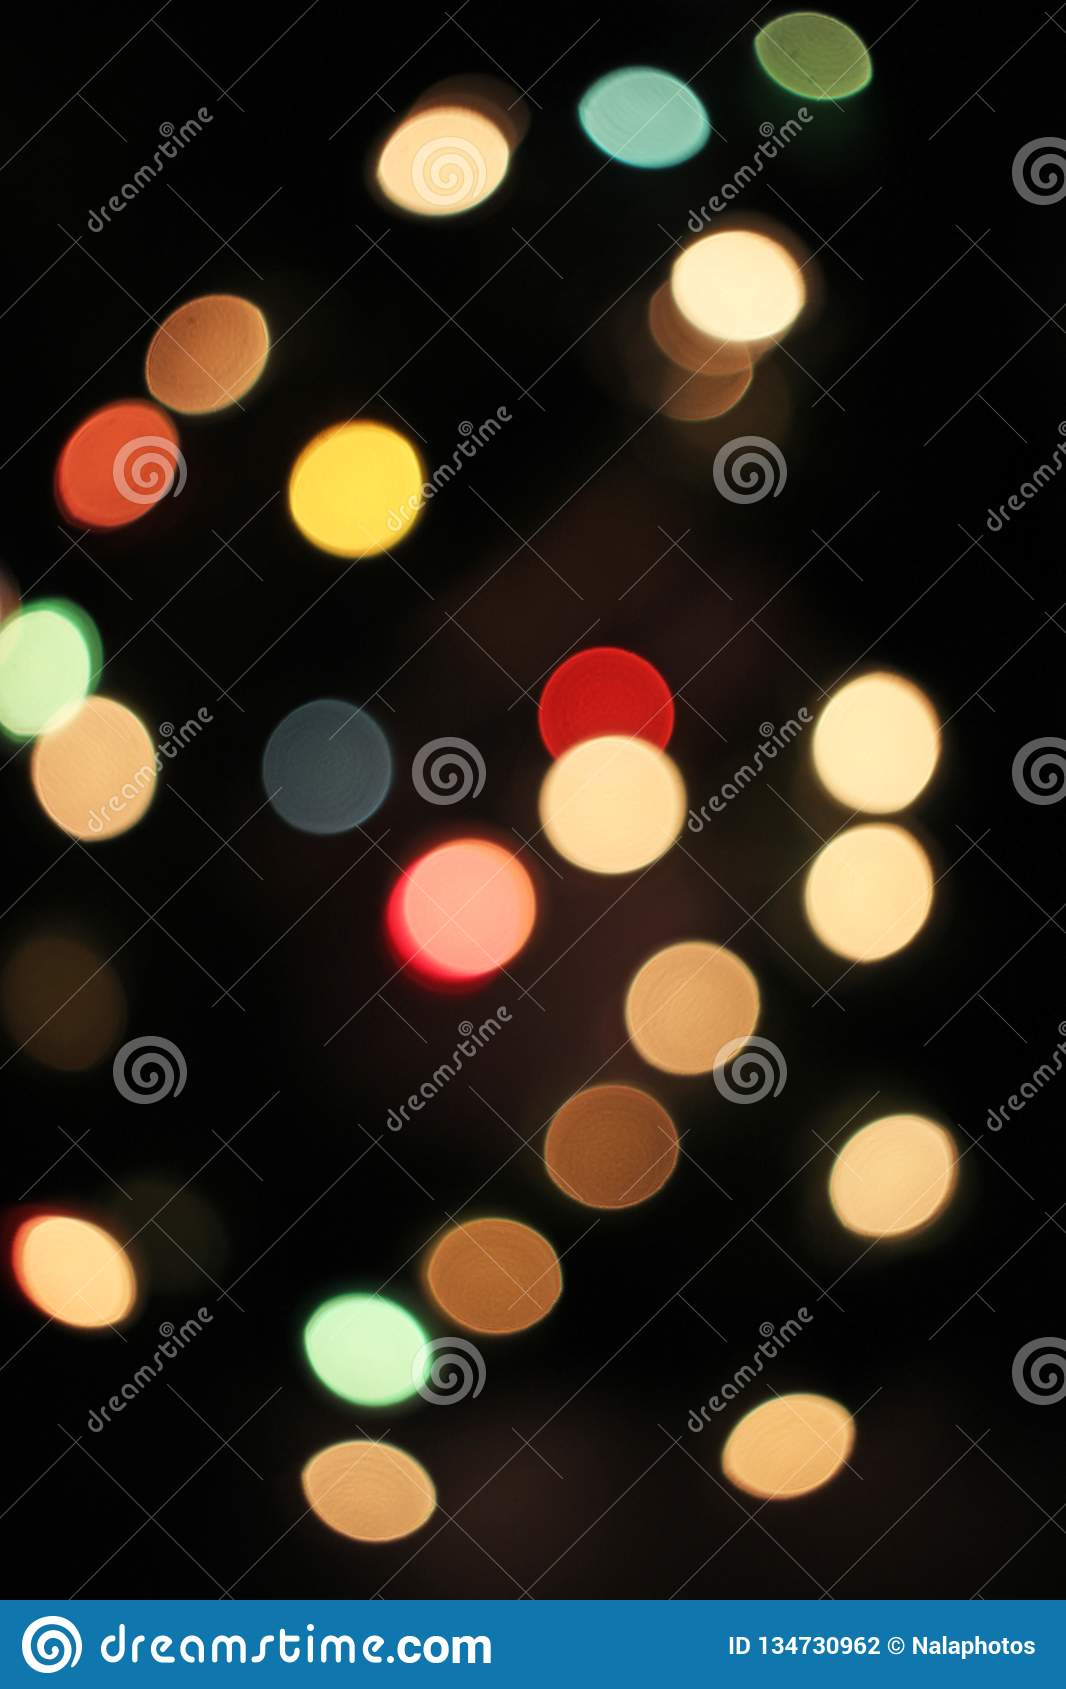 Blurred defocused christmas light lights bokeh background. Colorful red yellow blue green de focused glittering pattern